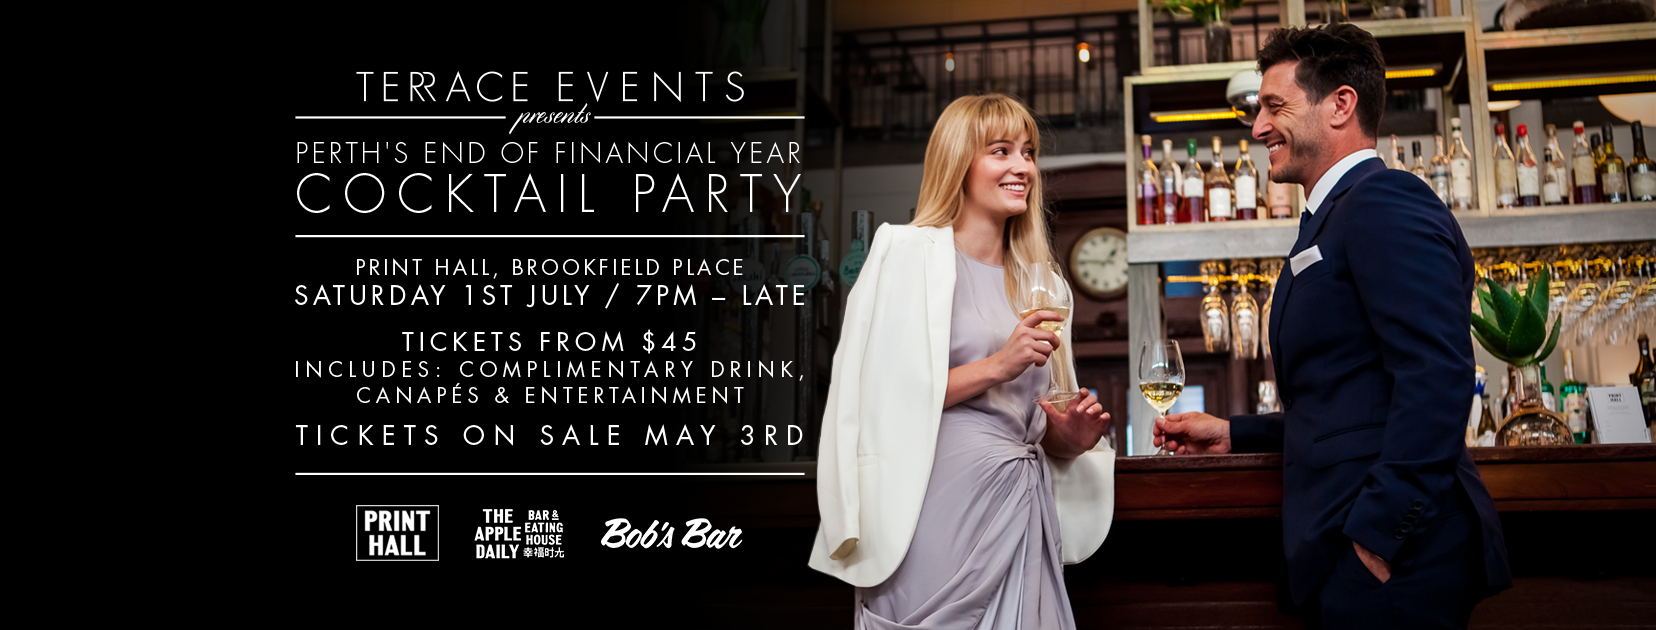 Tickets for Perth's End of Financial Year Cocktail Party in Perth from Ticketbooth